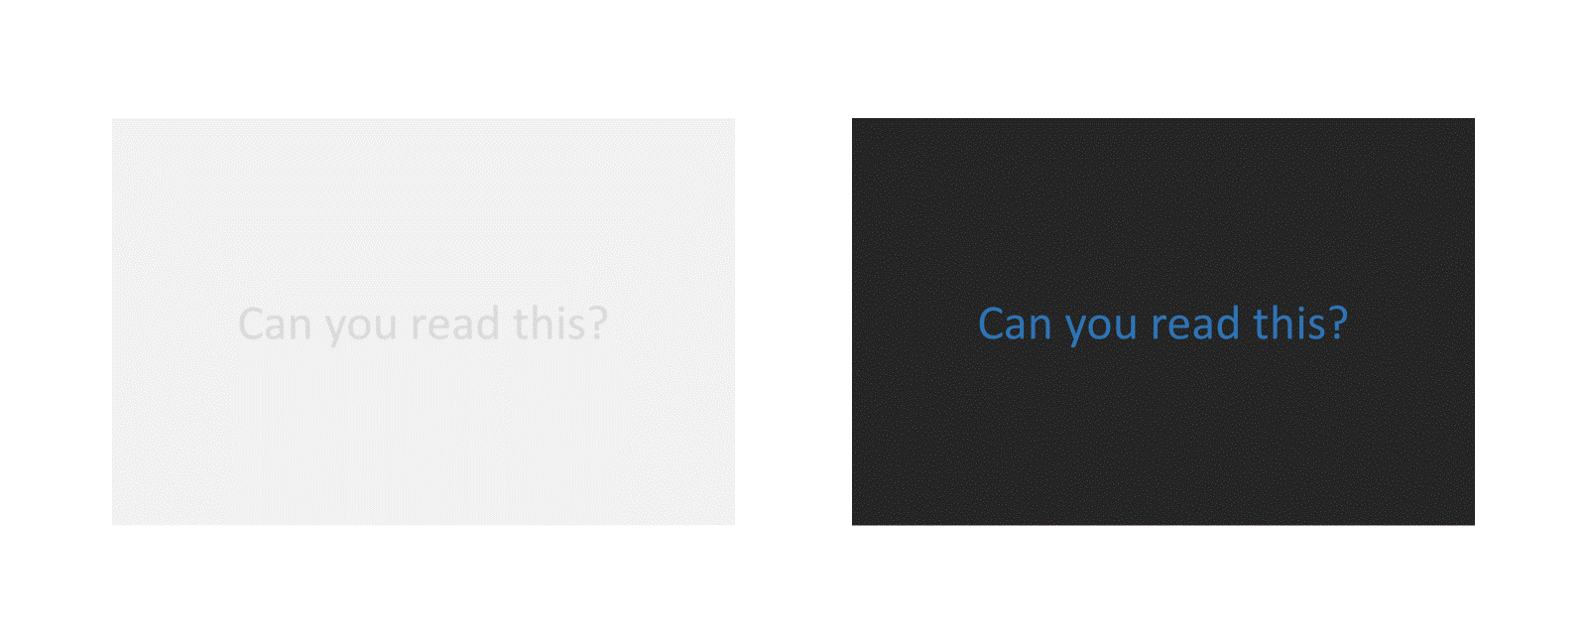 Two text boxes with text reading 'Can you read this?'. The first text box is pale grey with grey text, the second is dark grey with dark blue text. In both boxes the text is hard to read.